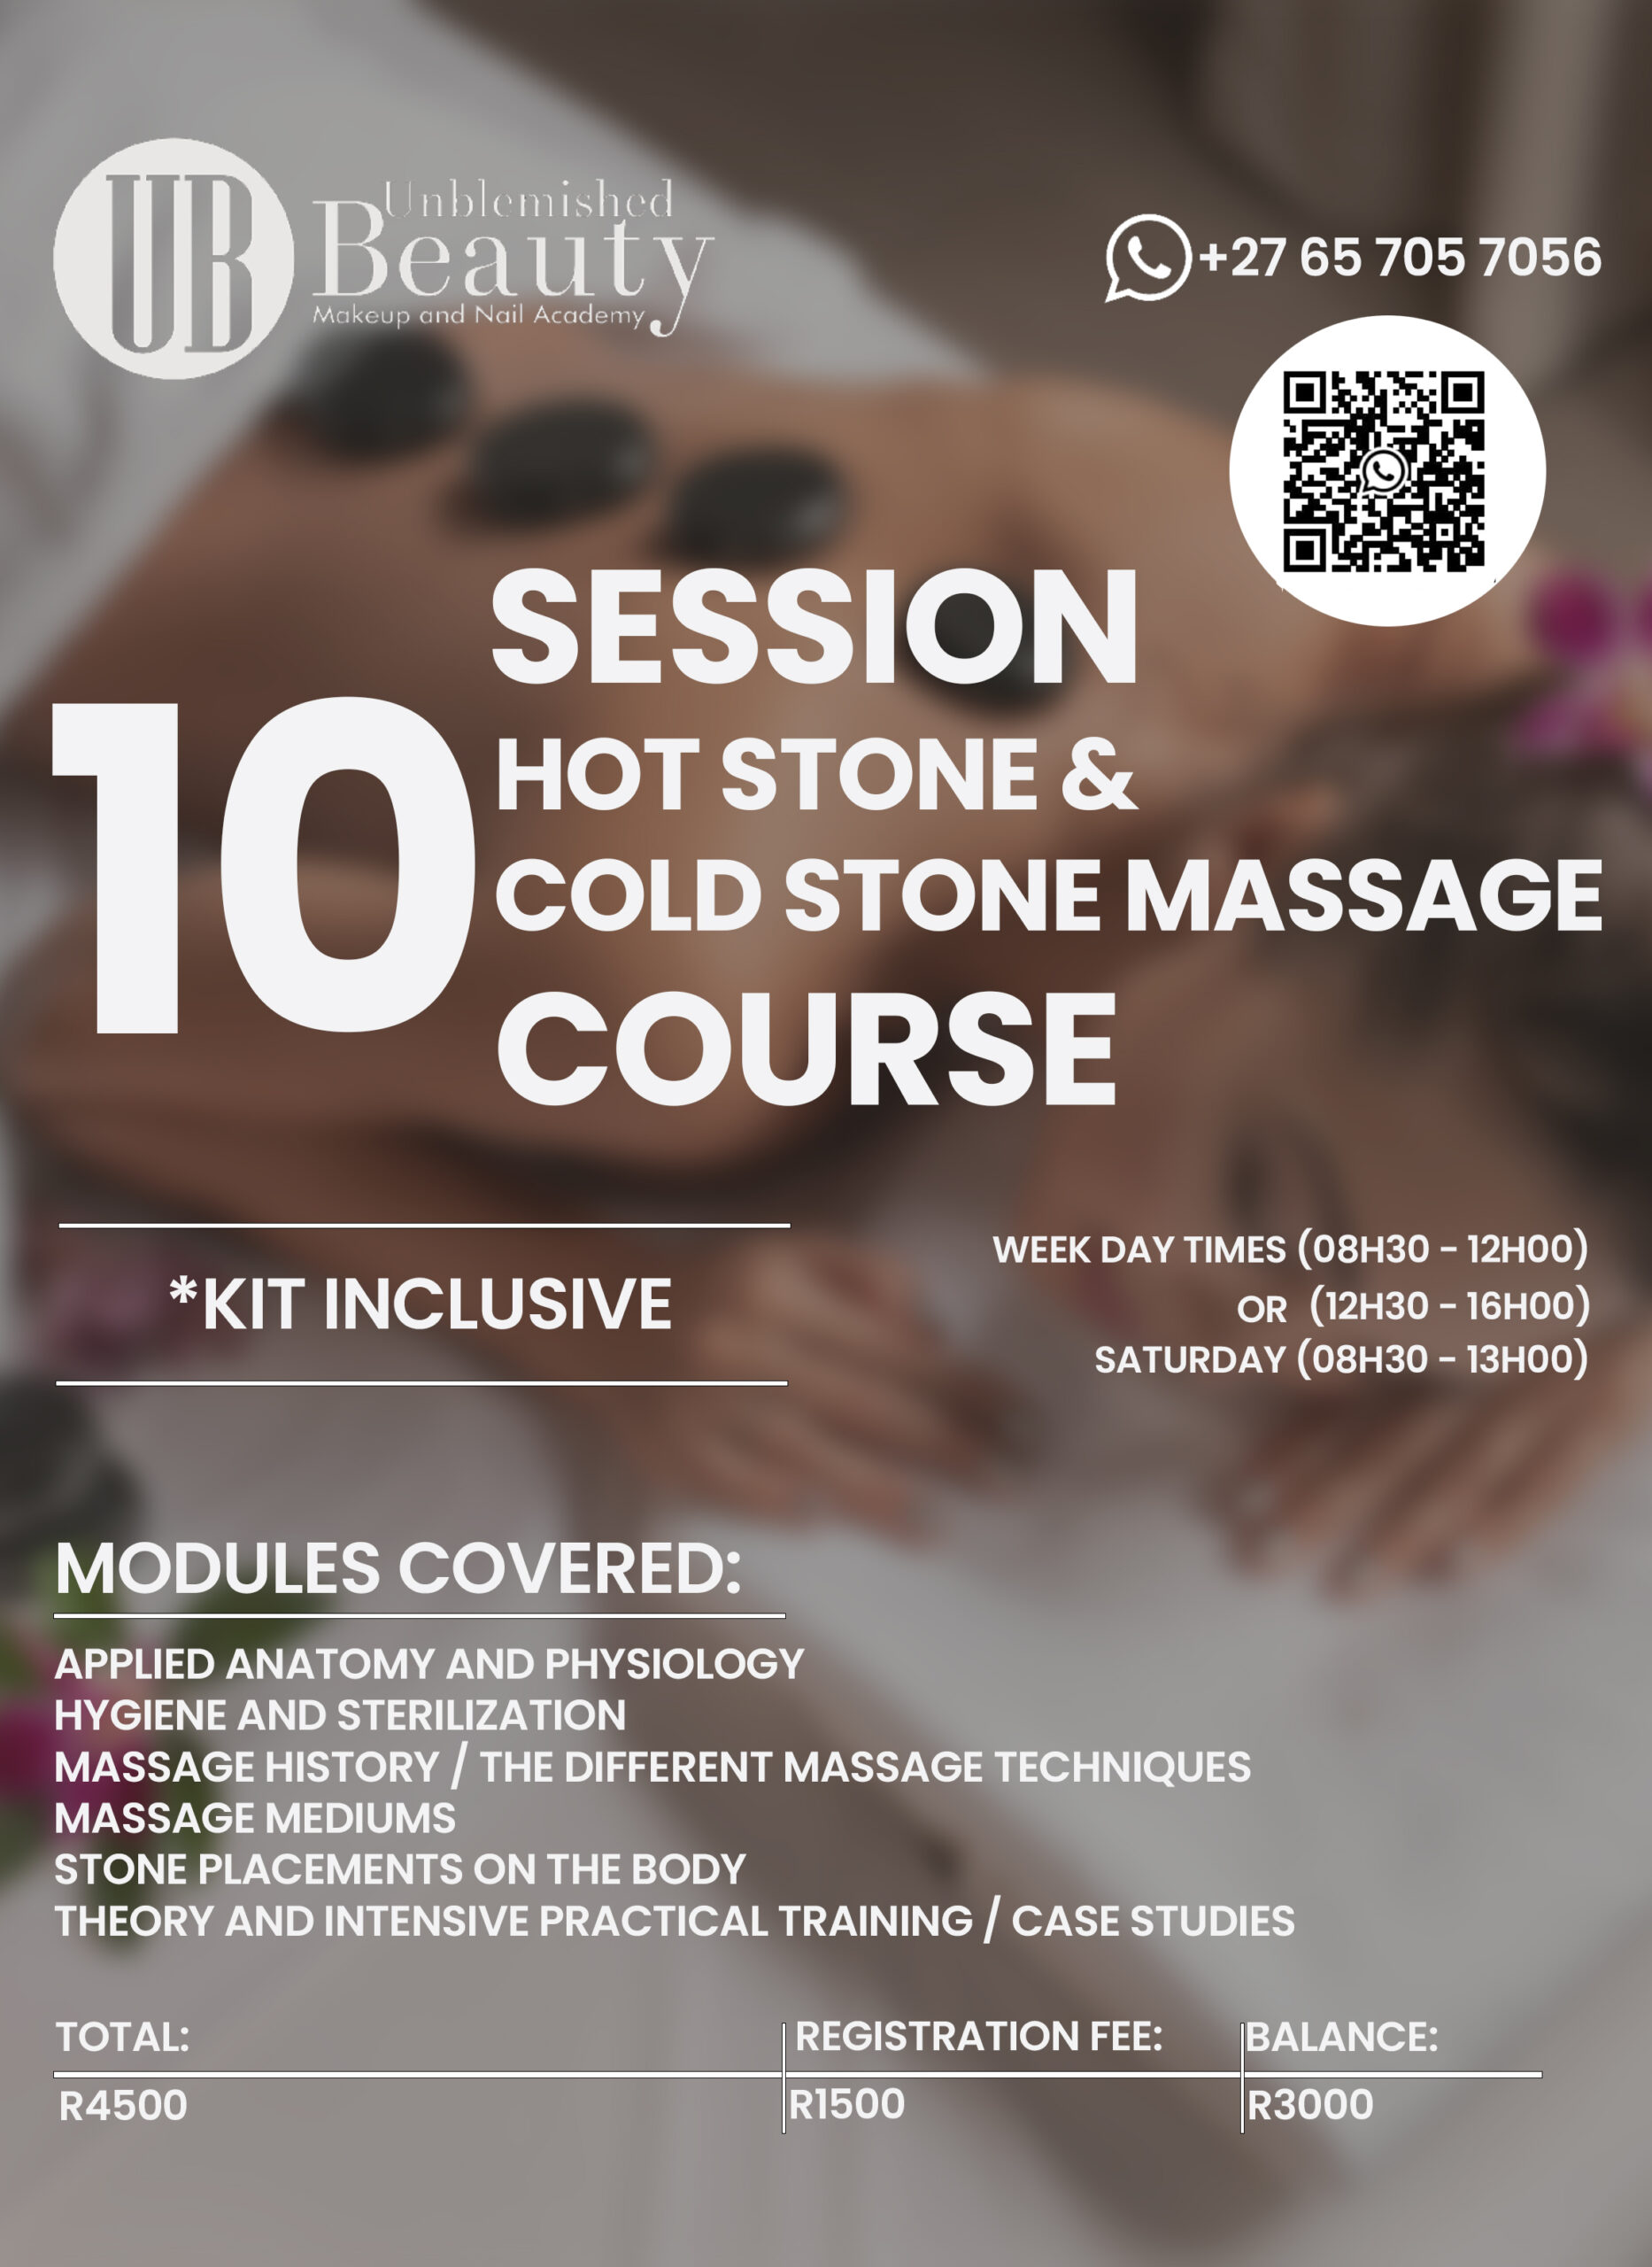 Unblemished Beauty Course Posters- Hot Stone Cold Stone Massage 2